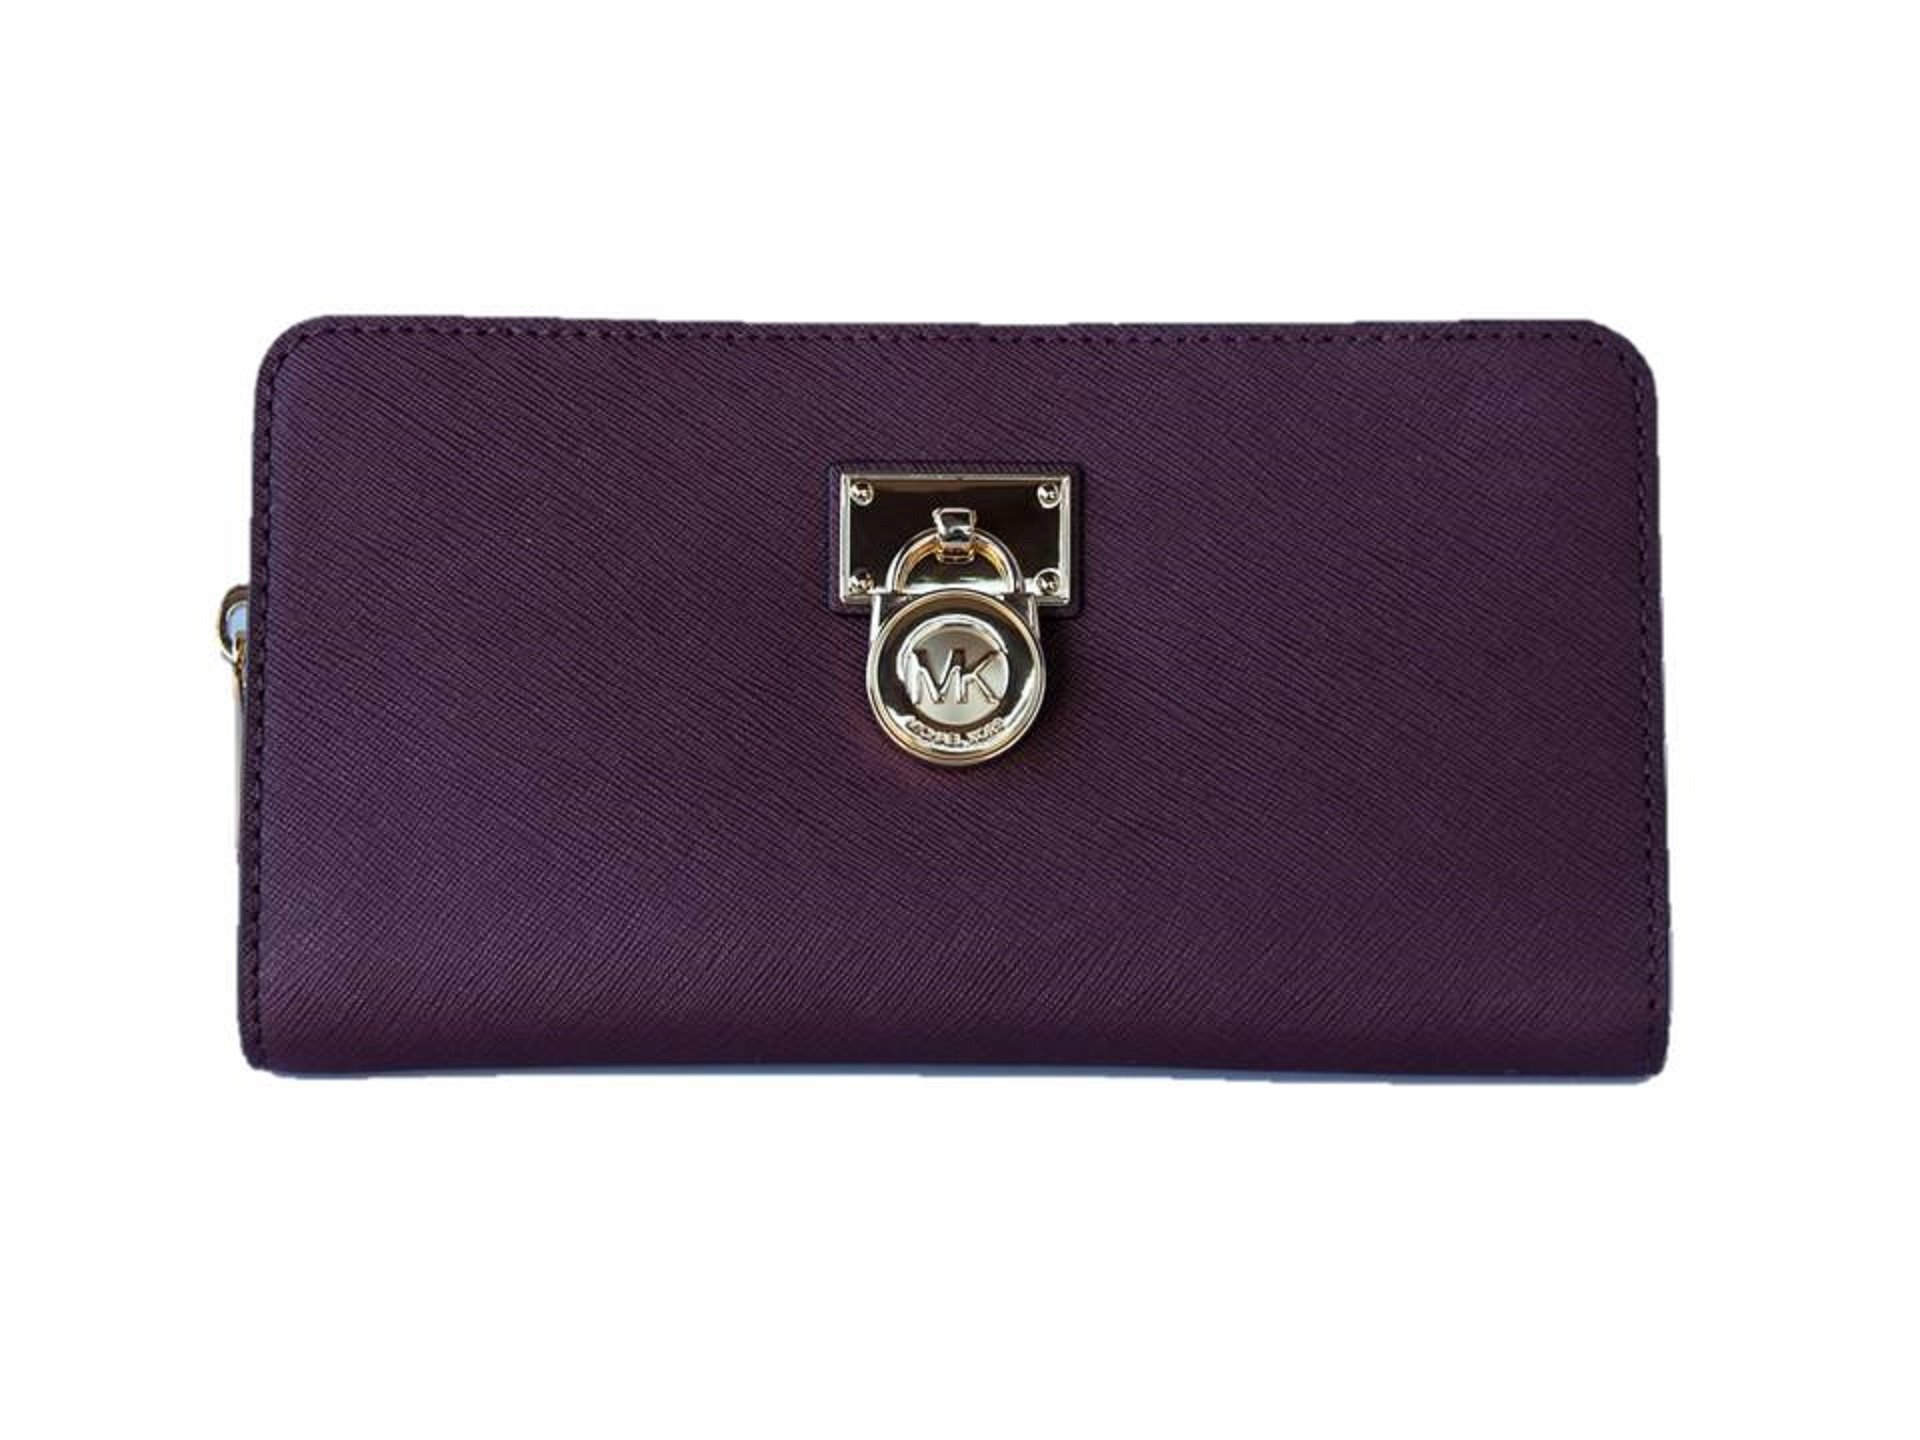 Michael Kors Hamilton Traveler Saffiano Leather Large Zip Around Wallet - Plum